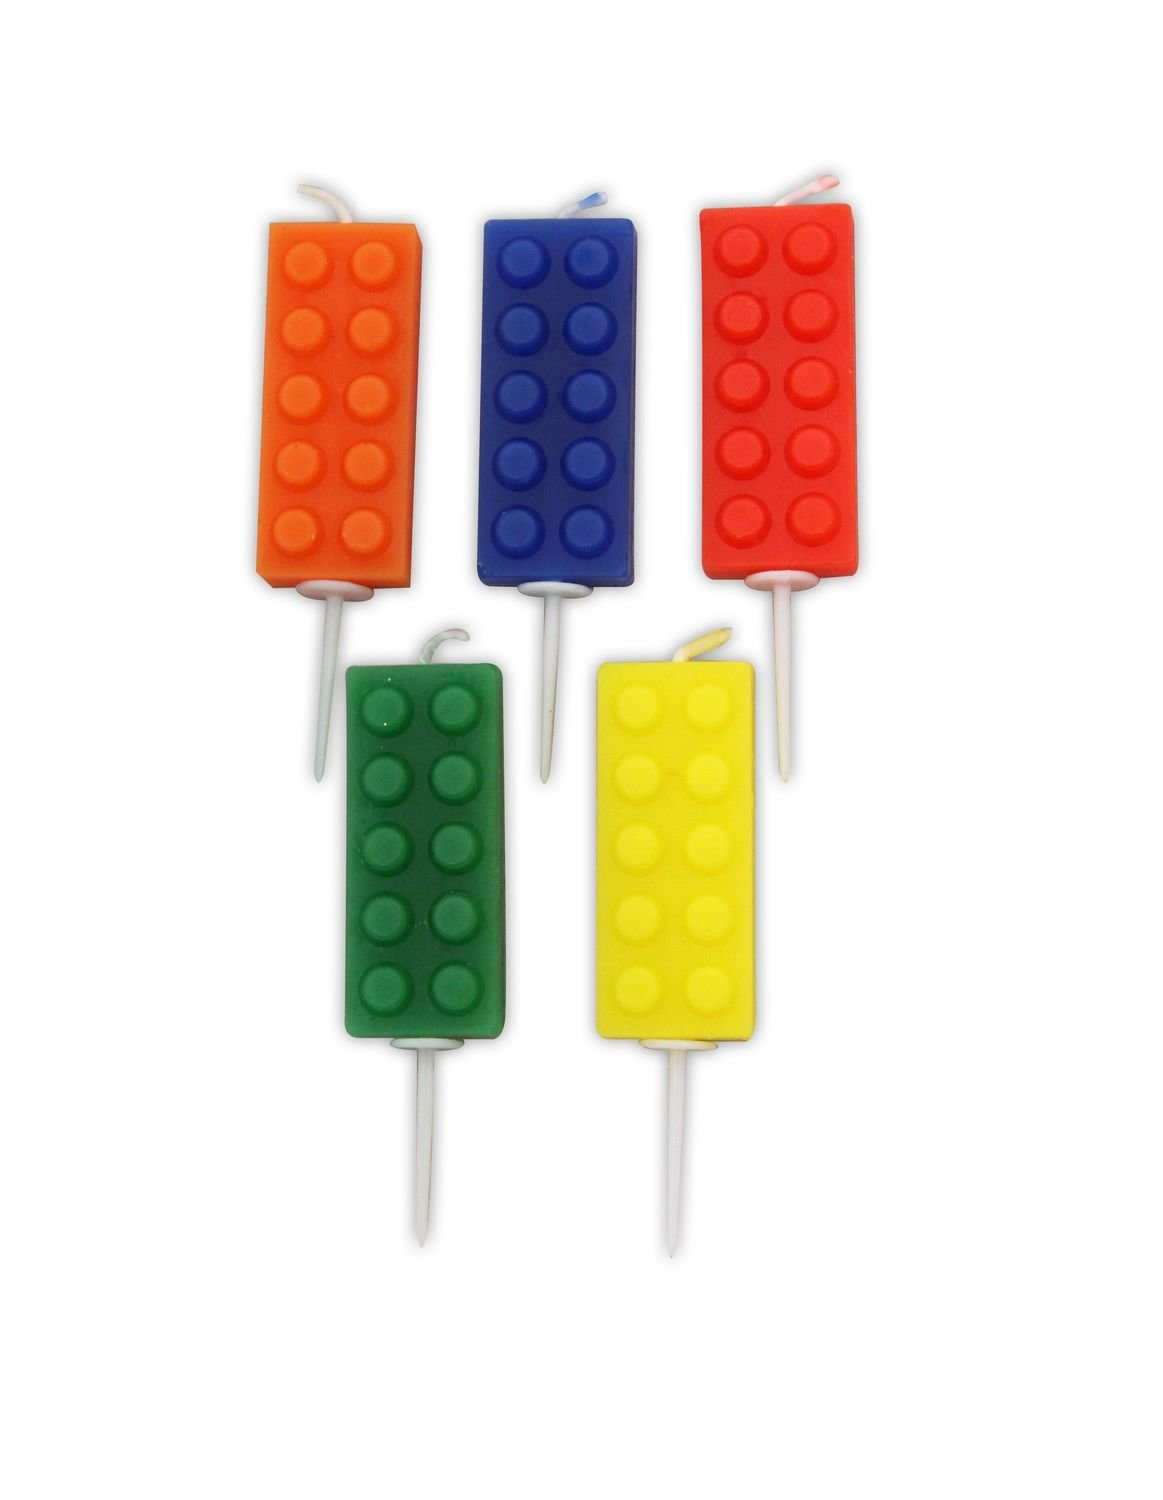 By AH Candles -Set of 5 BRICKS -Κεράκια Lego Τουβλάκια 5 τεμ